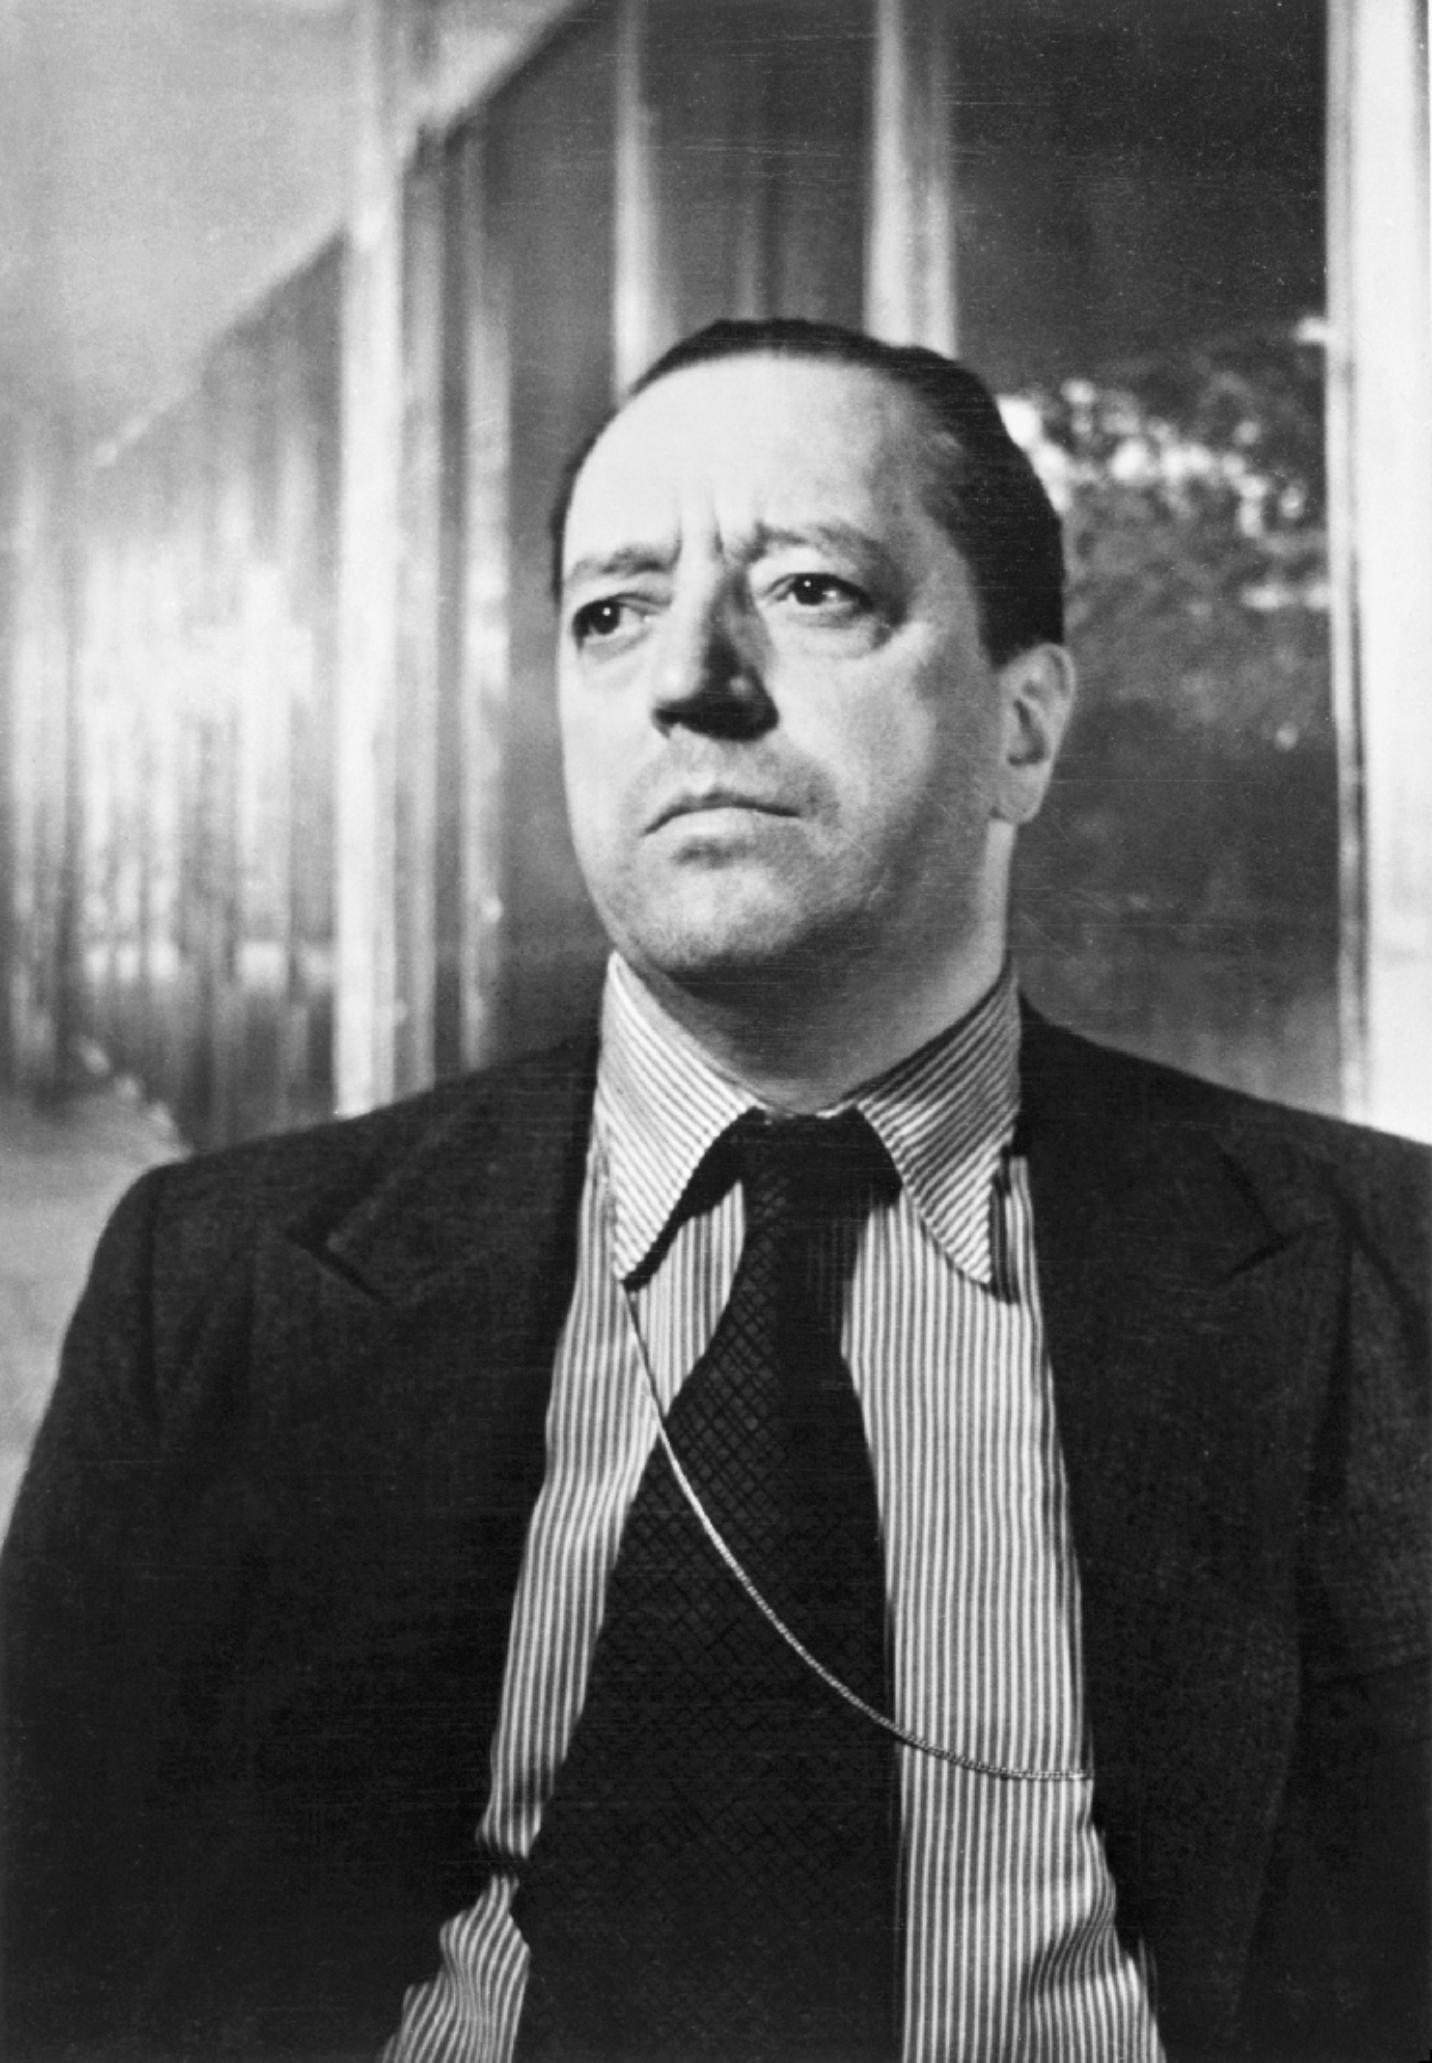 portrait of ludwig mies van der rohe photo werner rohde 1934 bauhaus the charnel house. Black Bedroom Furniture Sets. Home Design Ideas